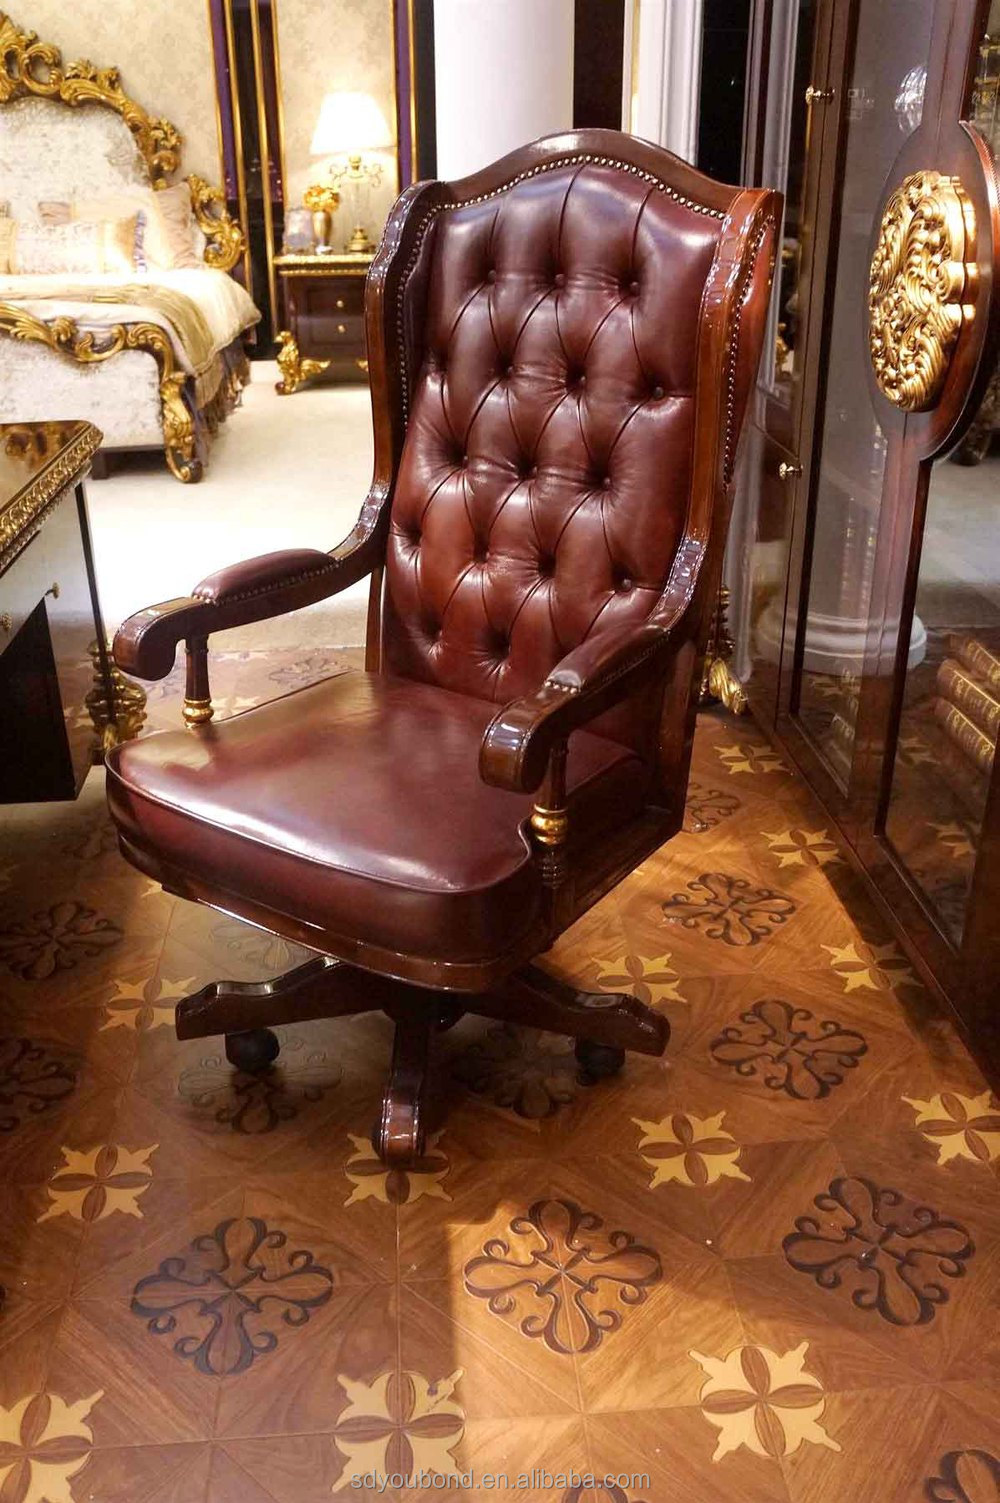 Picture of: 0063 European Classic Design Wooden Study Room Or Office Furniture Buy Classic Wood Study Room Antique Office Furniture European Design Wooden Furniture Product On Alibaba Com